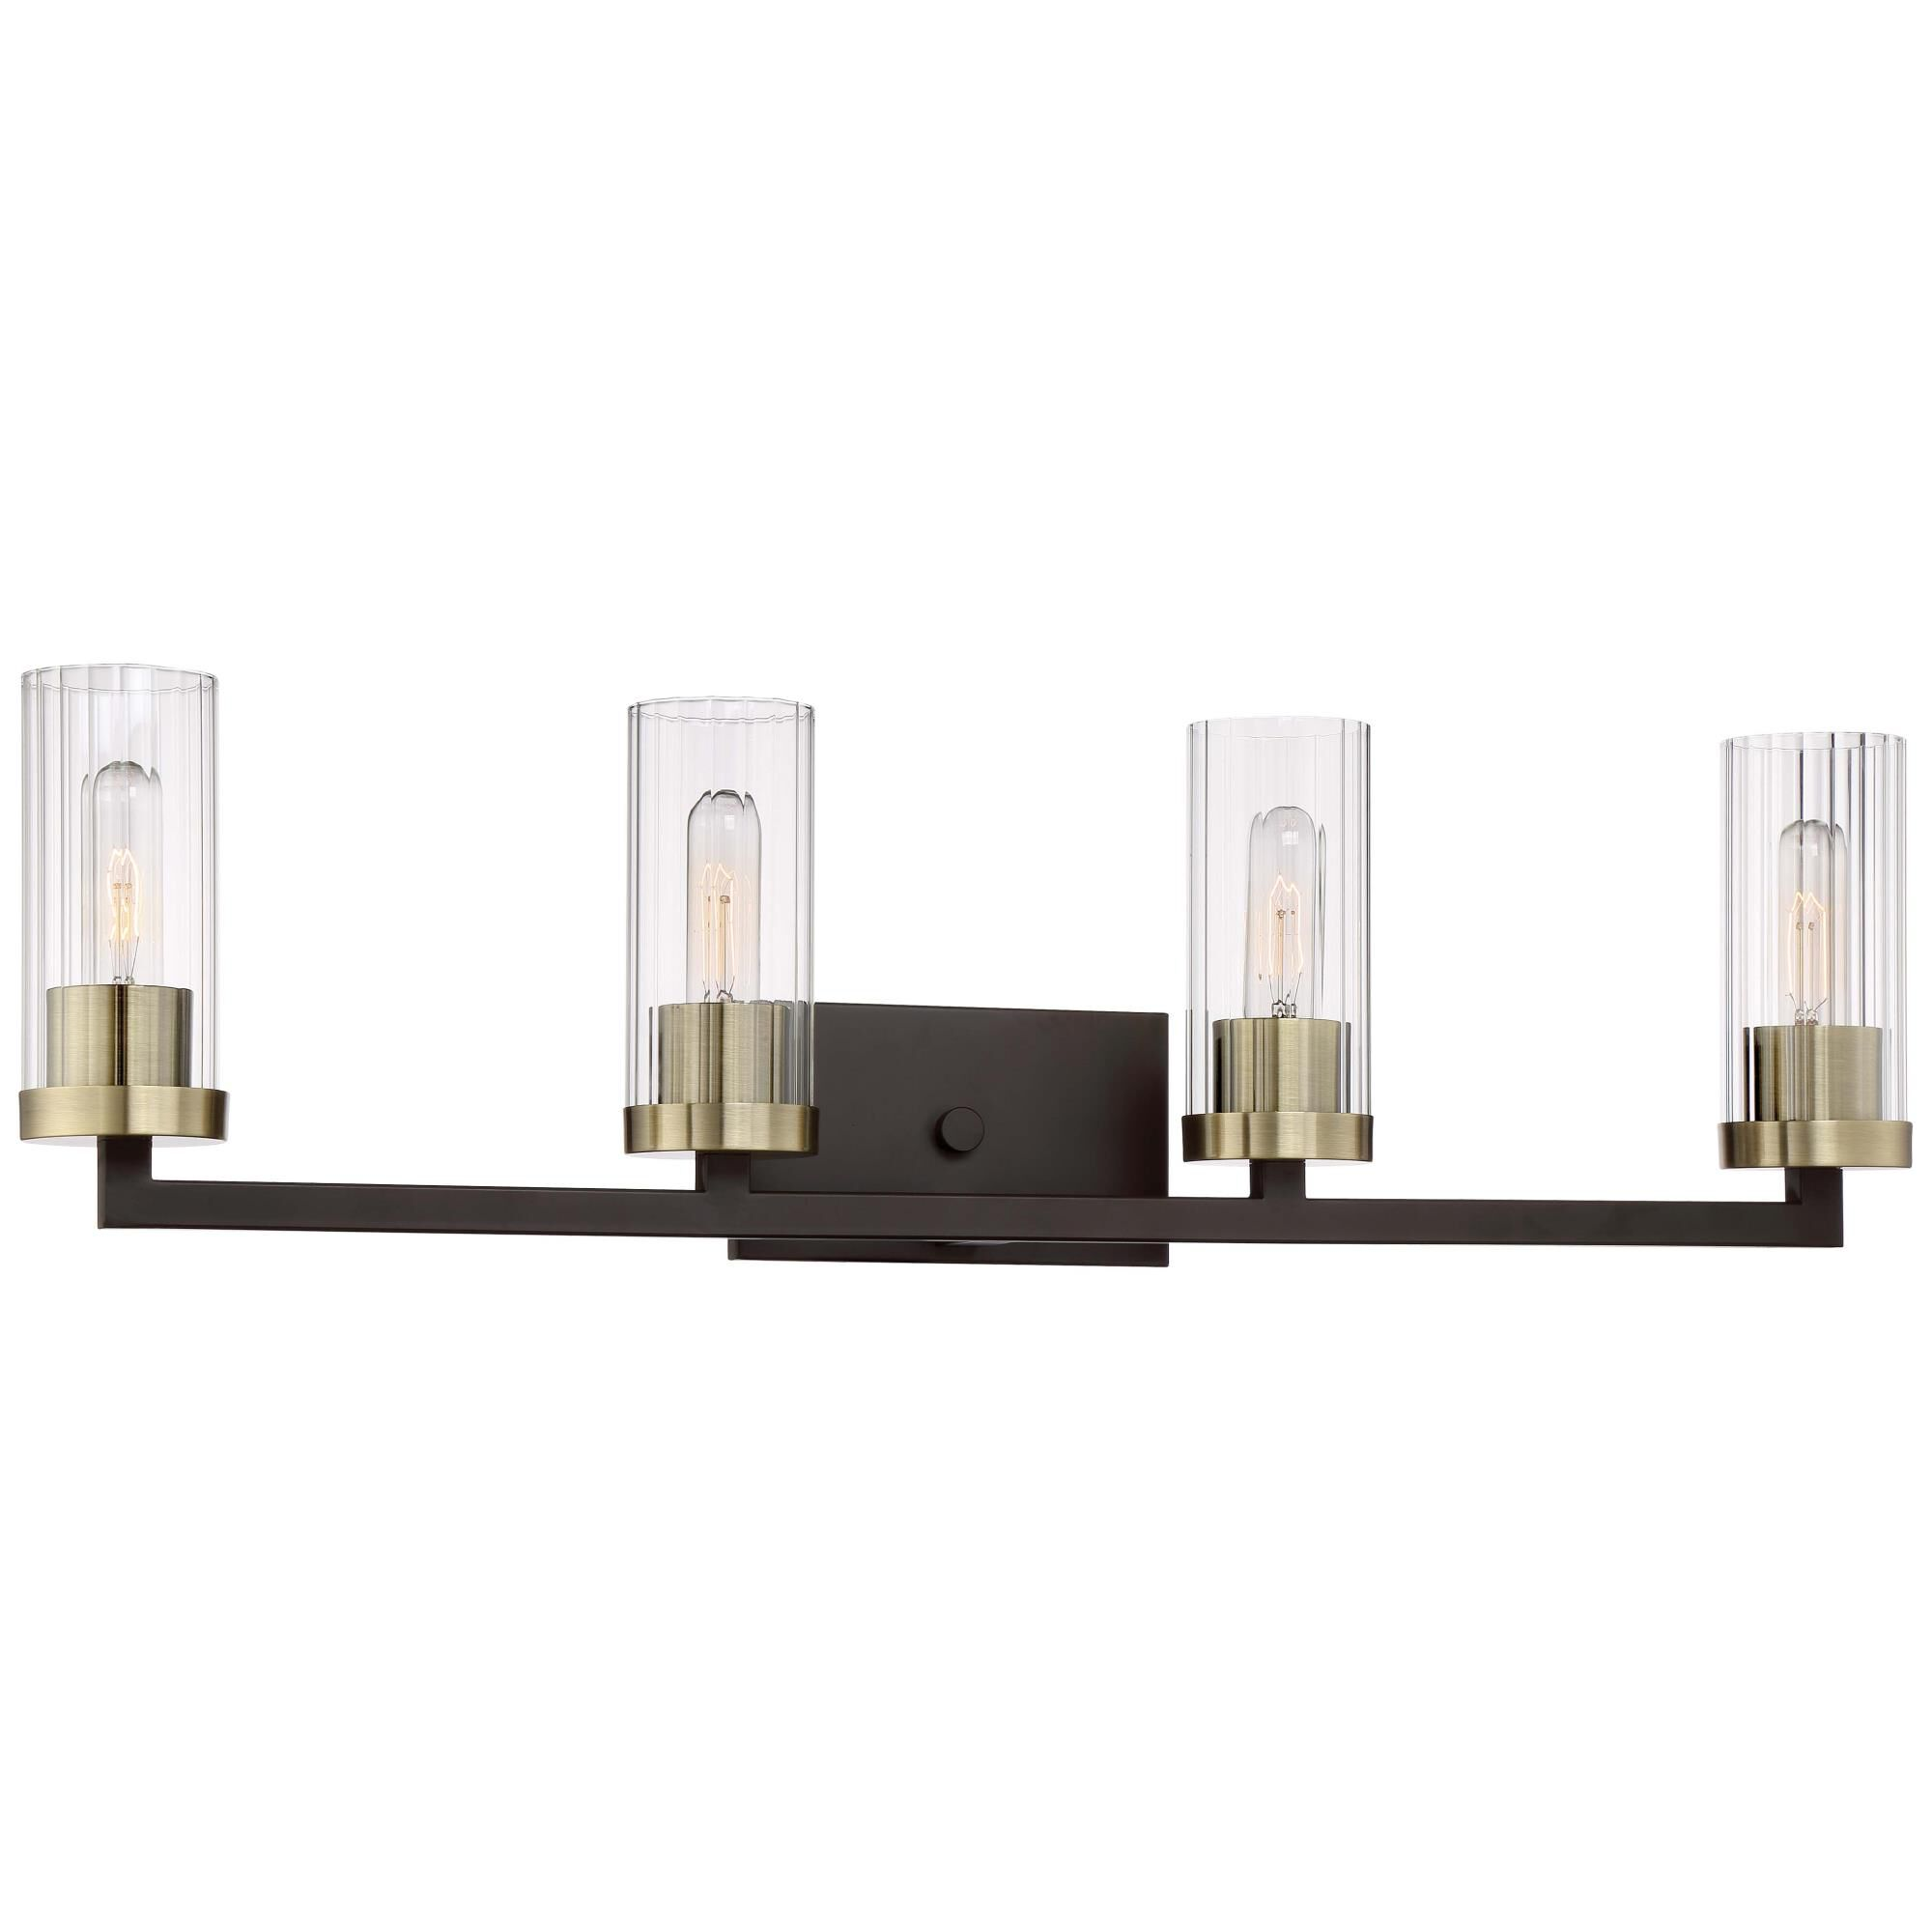 Minka Lavery Ainsley Court 32 Inch 4 Light Bath Vanity Light Ainsley Court - 3044-560 - Restoration-vintage Bath Vanity Light